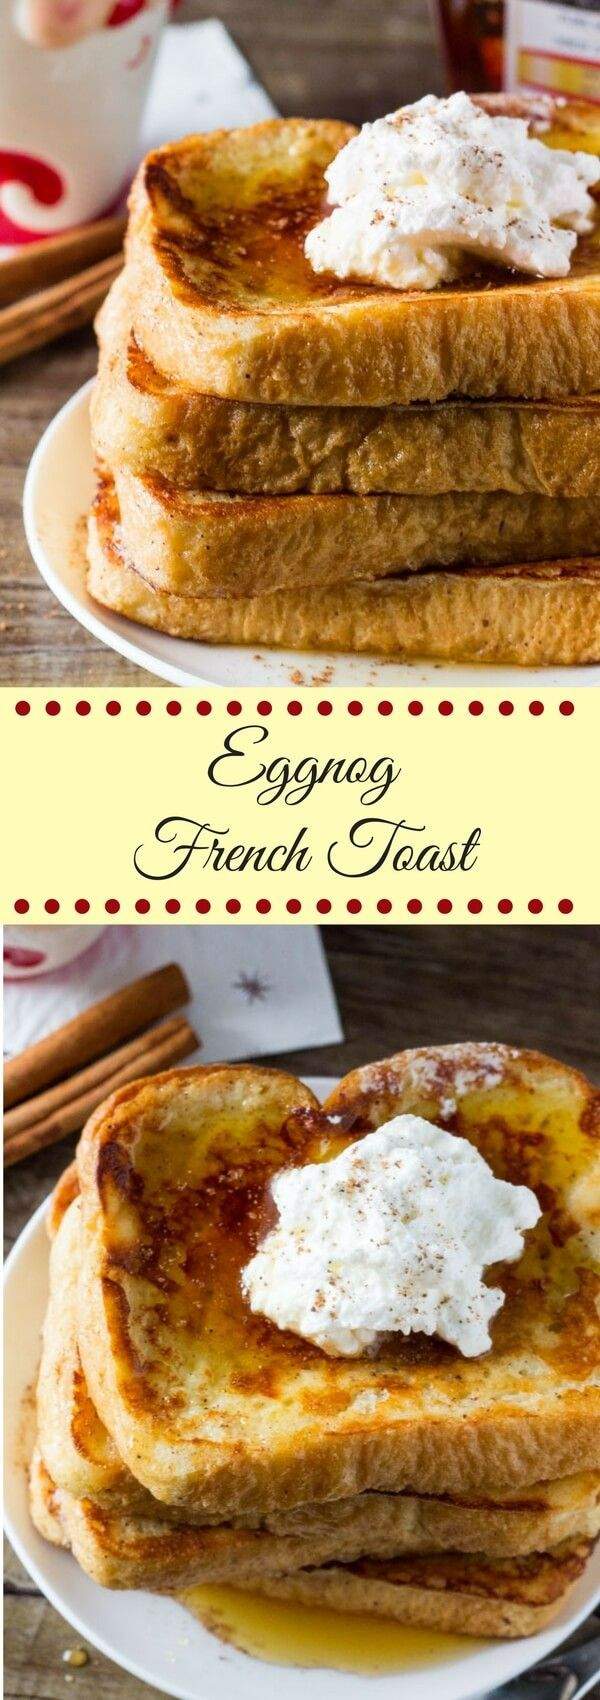 Eggnog French Toast is fluffy & soft with golden edges, a hint of nutmeg and delicious eggnog flavor. The perfect easy Christmas breakfast.